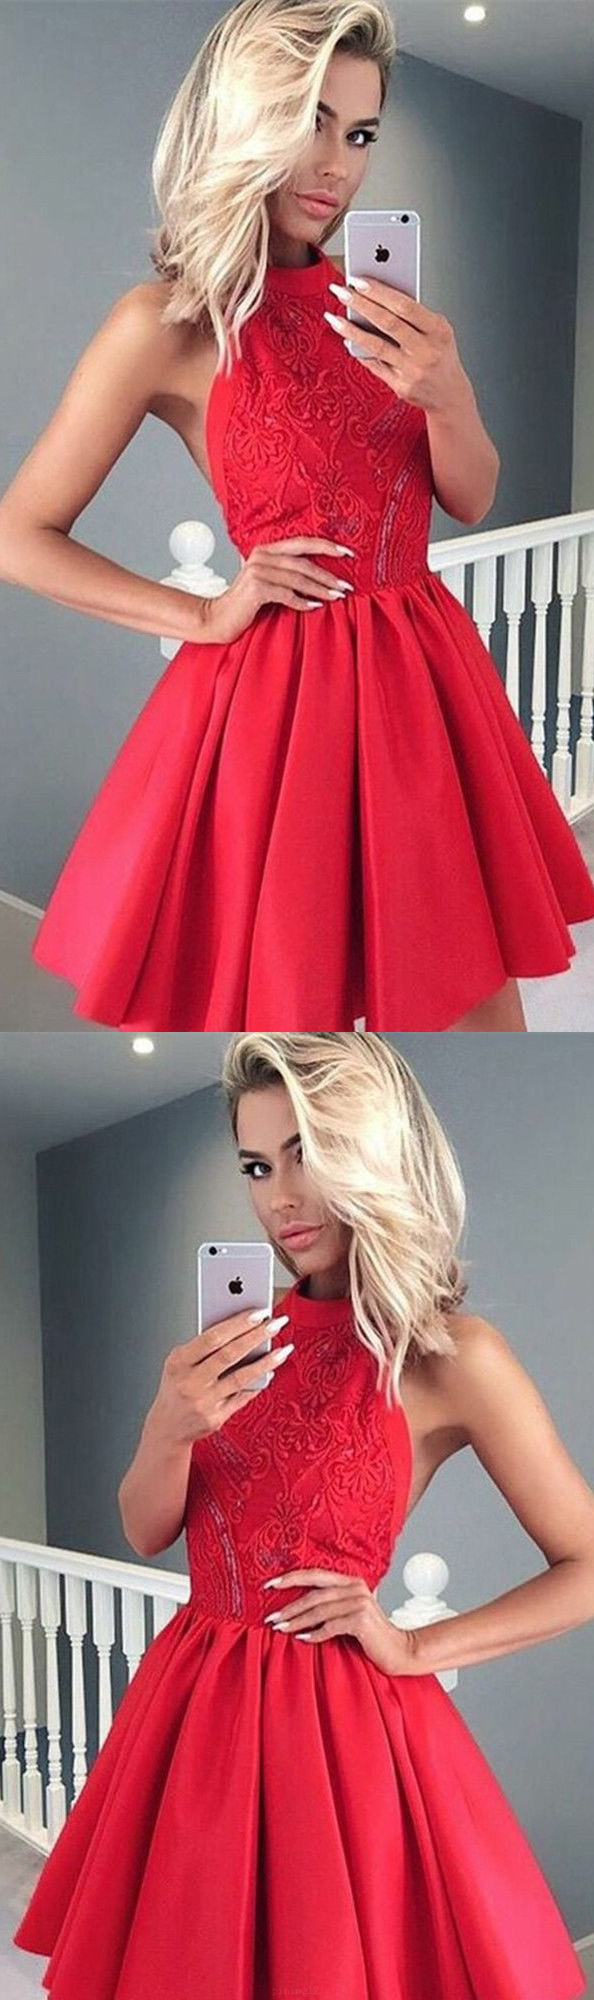 Red prom dresses short prom dresses prom dresses short backless